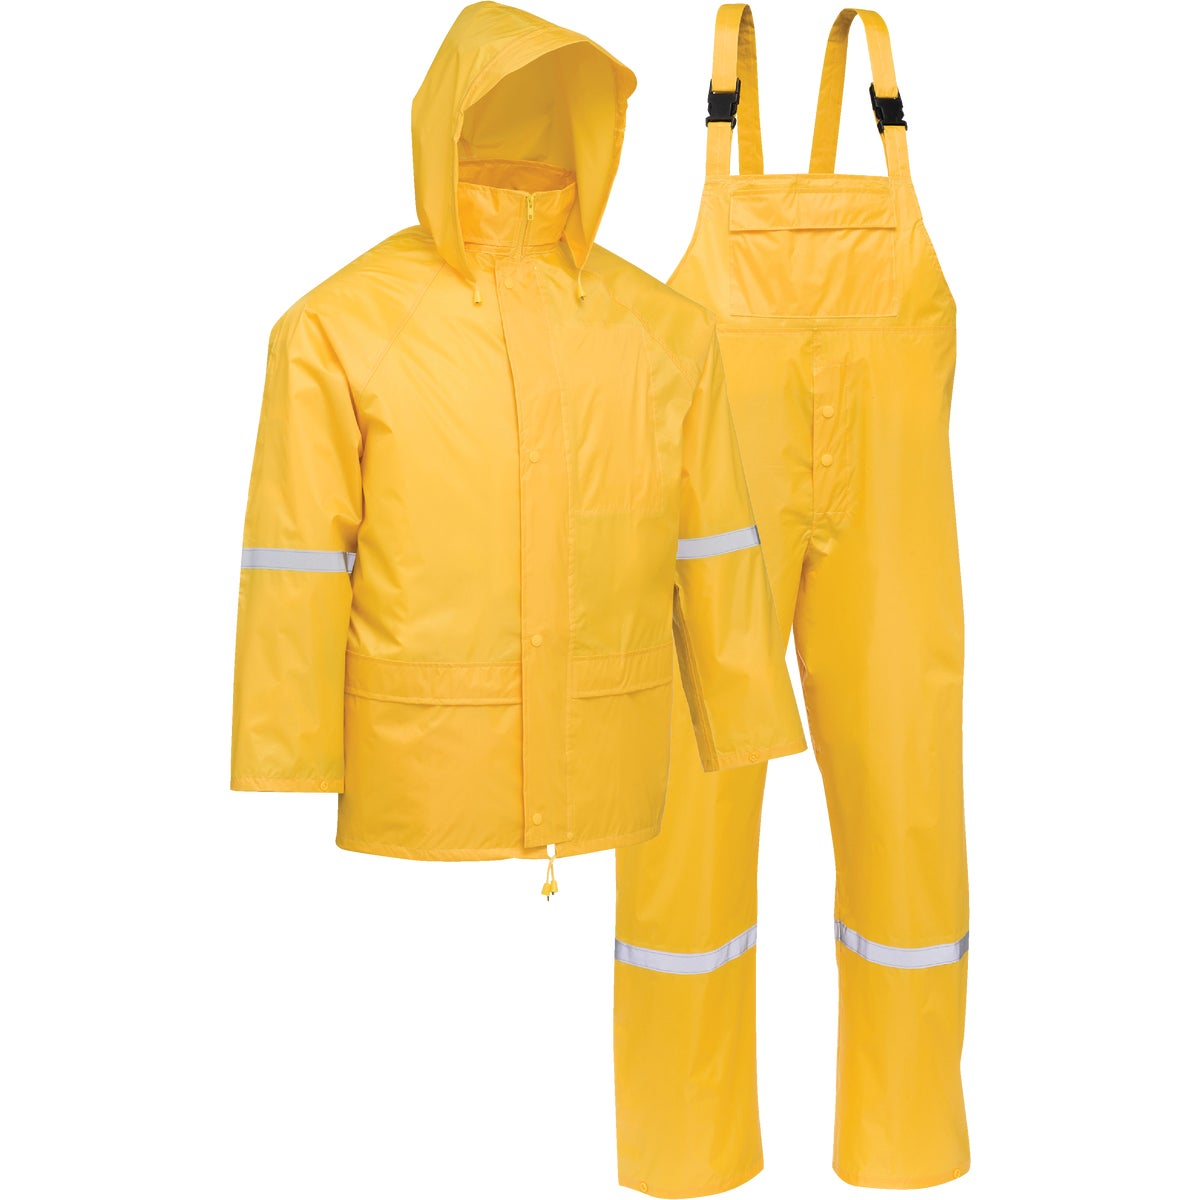 LG 20MM 3PC YEL RAINSUIT